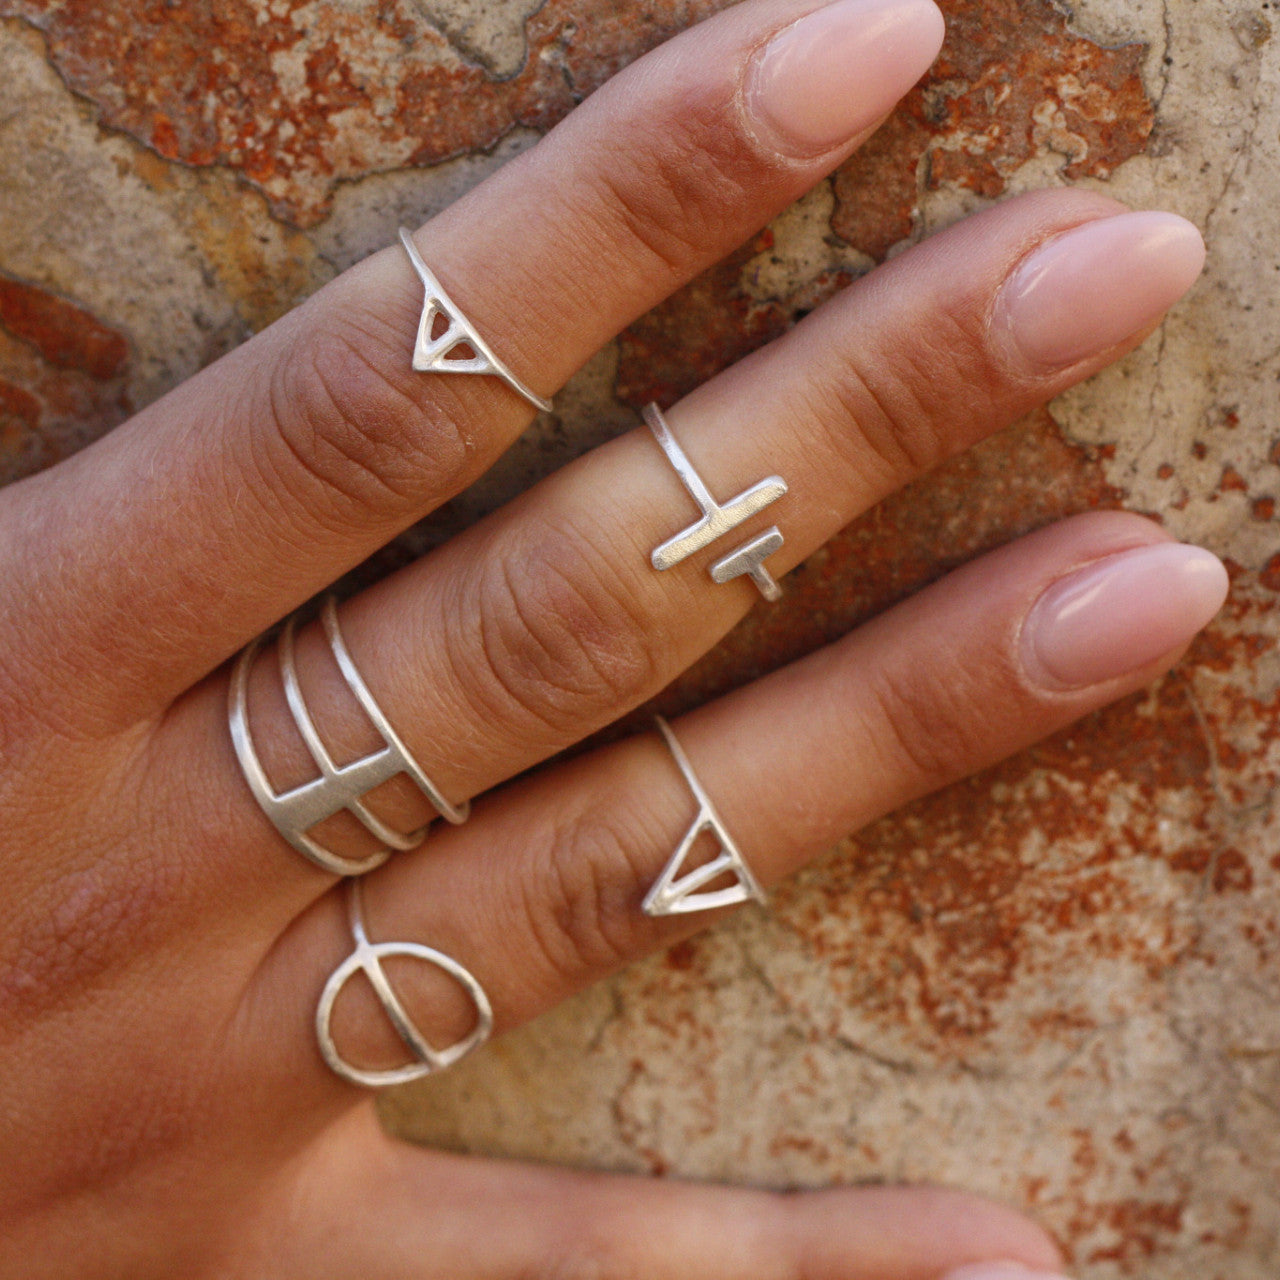 VIIVA Ring adjustable sterling silver  dark oxidized recycled silver delicate ring by Wild /& Arrow